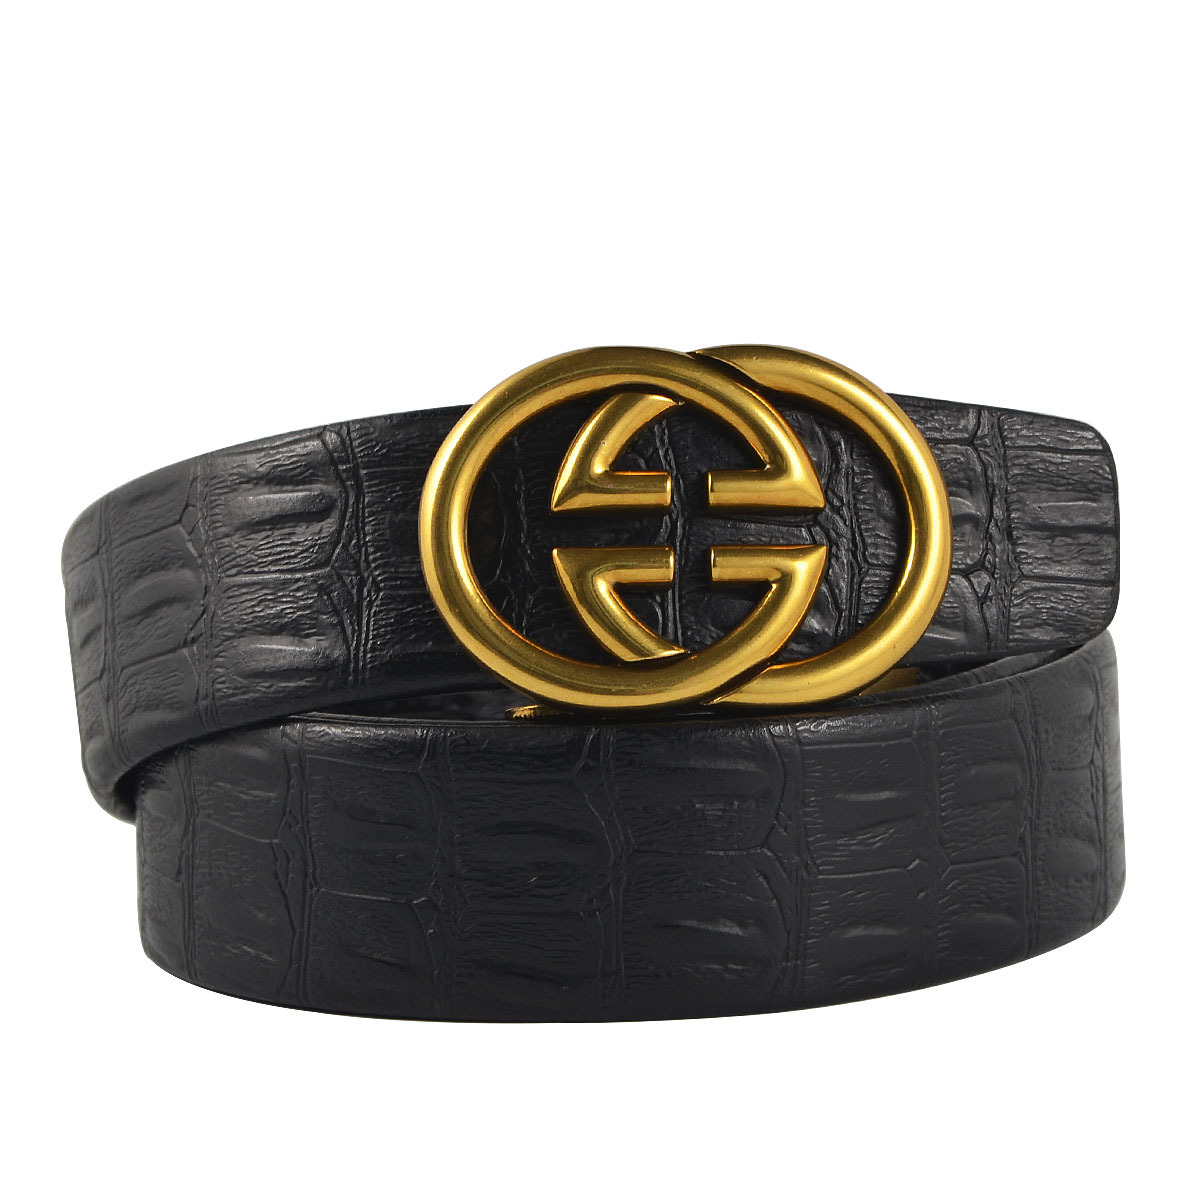 Luxury Designer H   Belts   Men High Quality Male Women Genuine Real Leather GG Double G Buckle Strap for Jeans